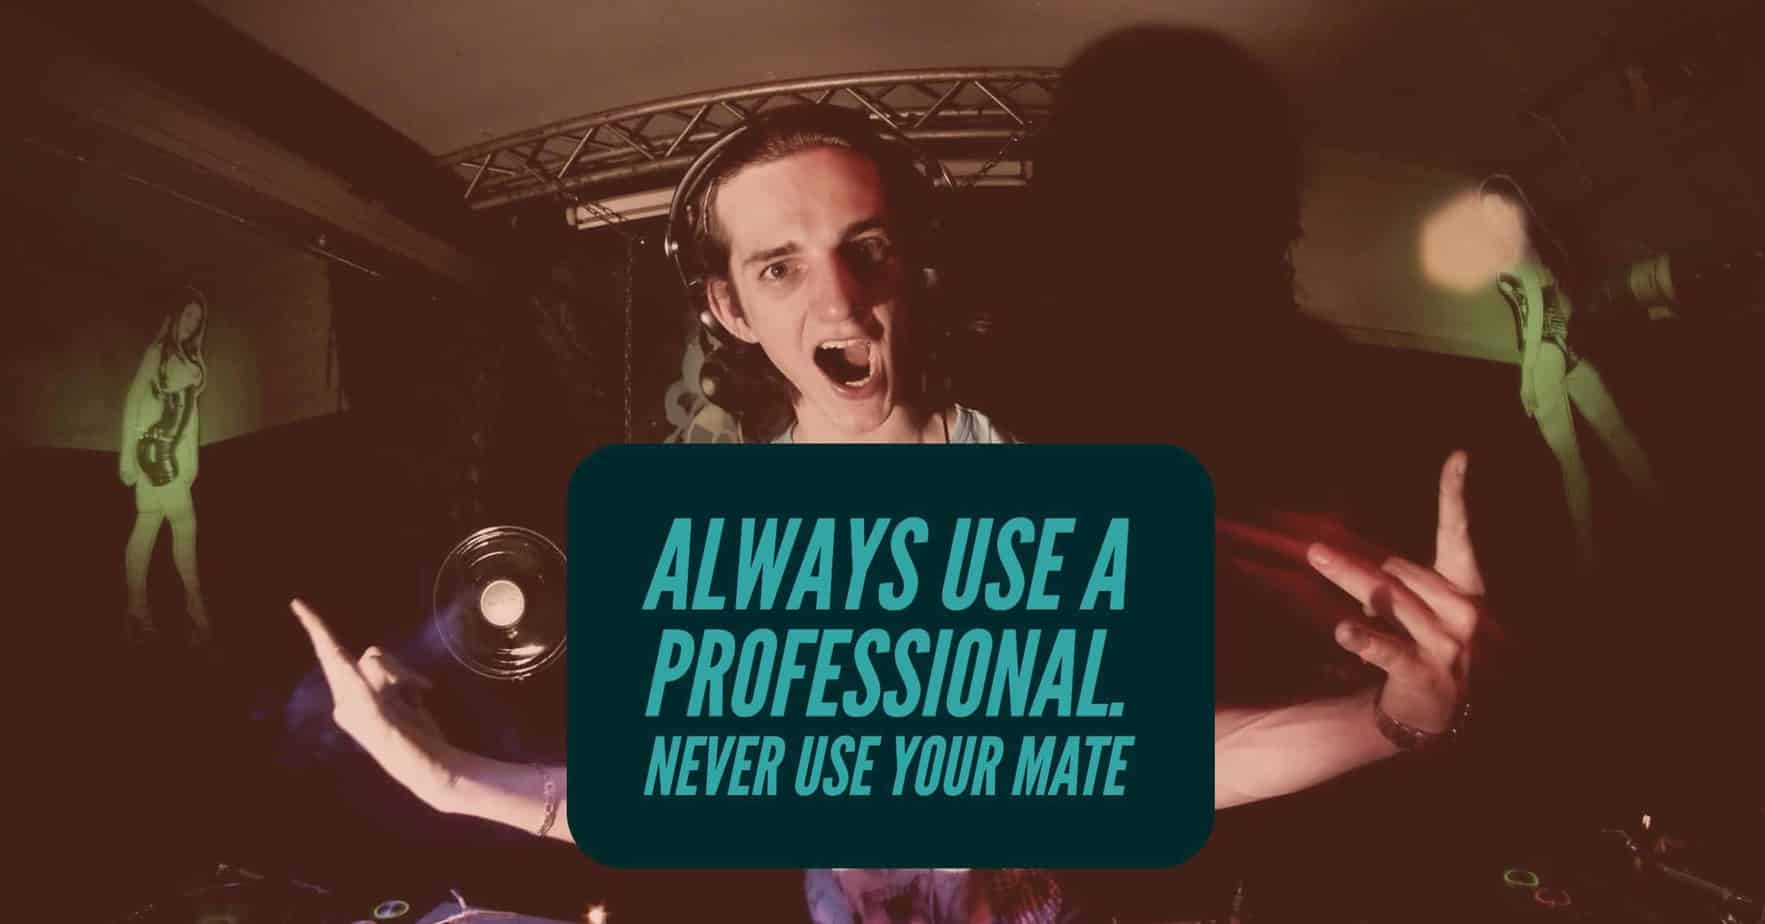 5 Reasons To Use A Pro and Not Your Mate